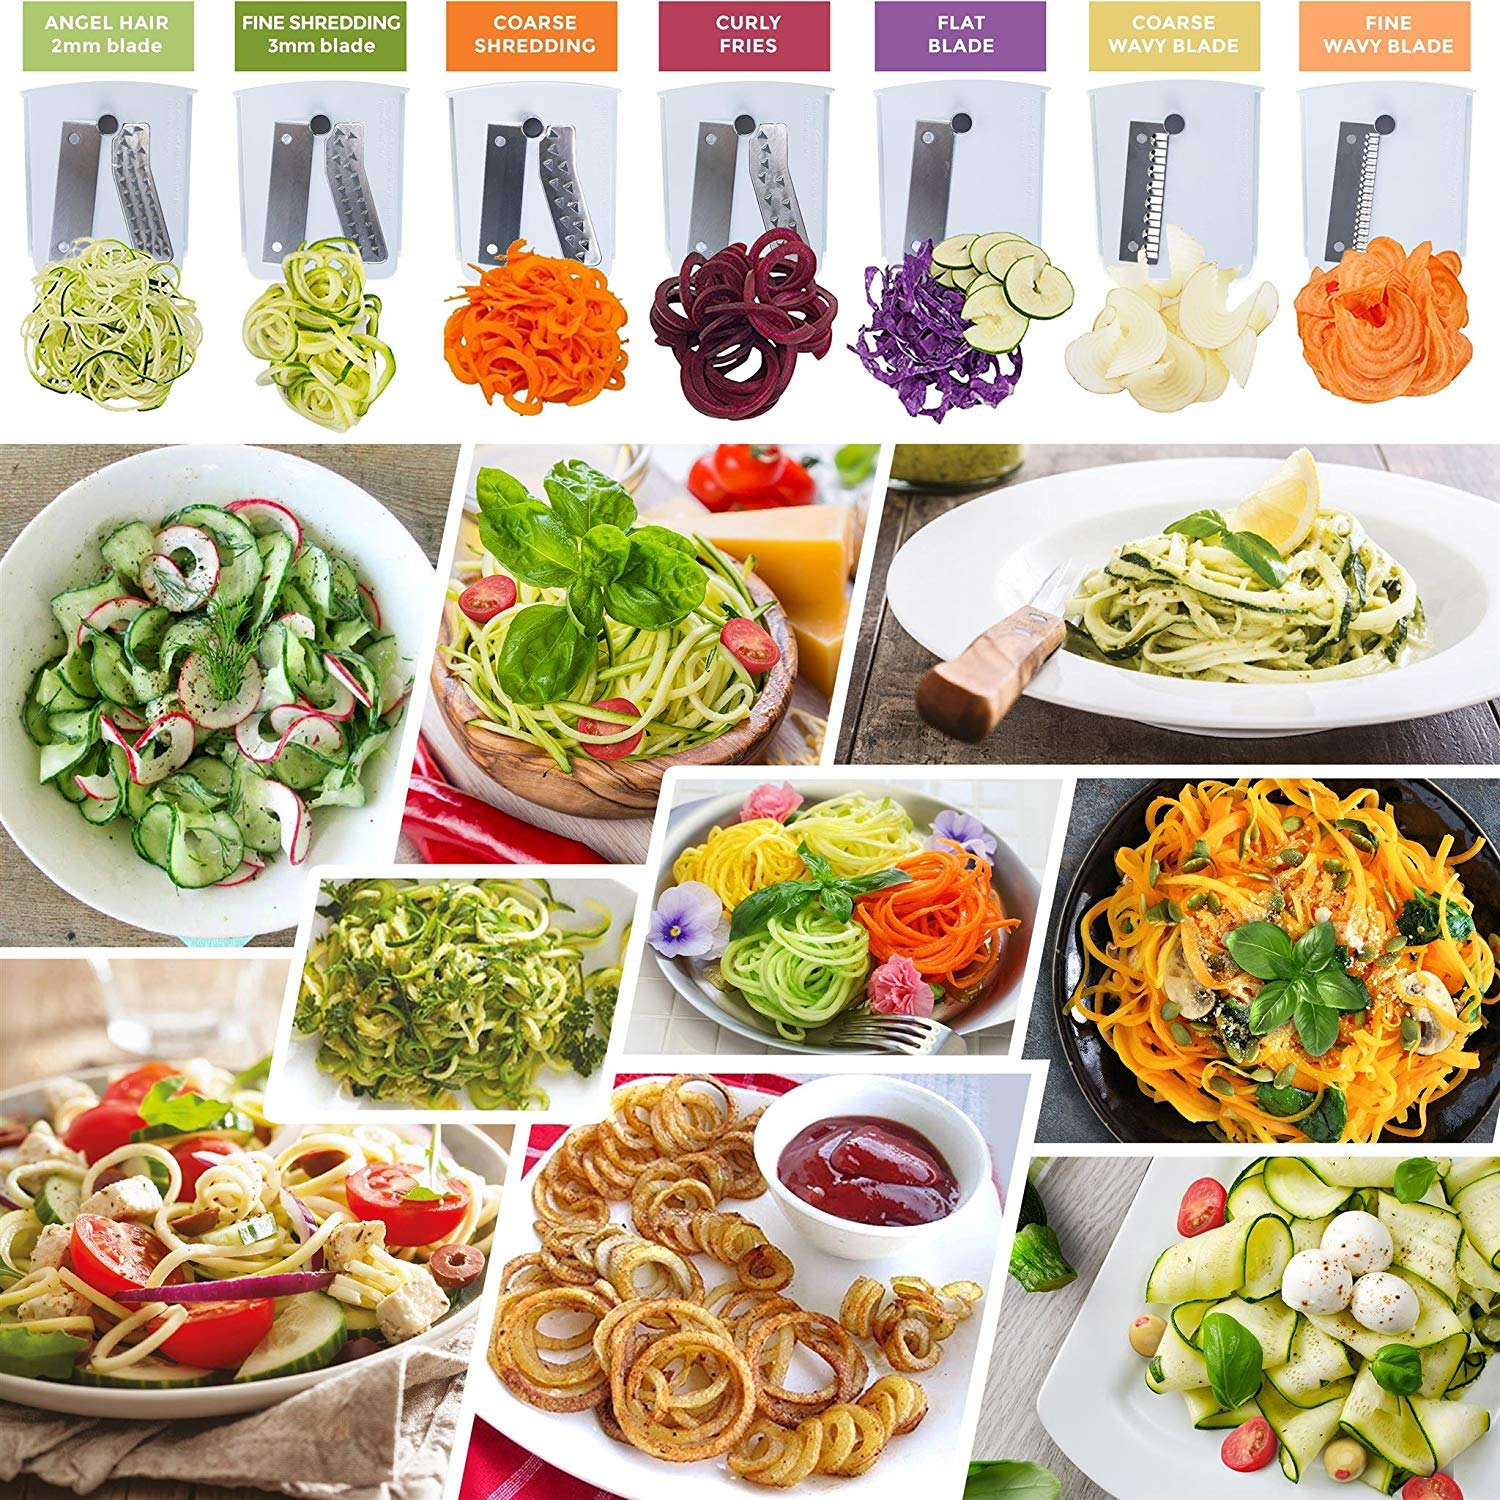 Spiralizer Ultimate 7 Strongest-and-Heaviest Duty Vegetable Slicer Best Veggie Pasta Spaghetti Maker for Keto//Paleo//Gluten-Free With Extra Blade Caddy /& 4 Recipe Ebook White